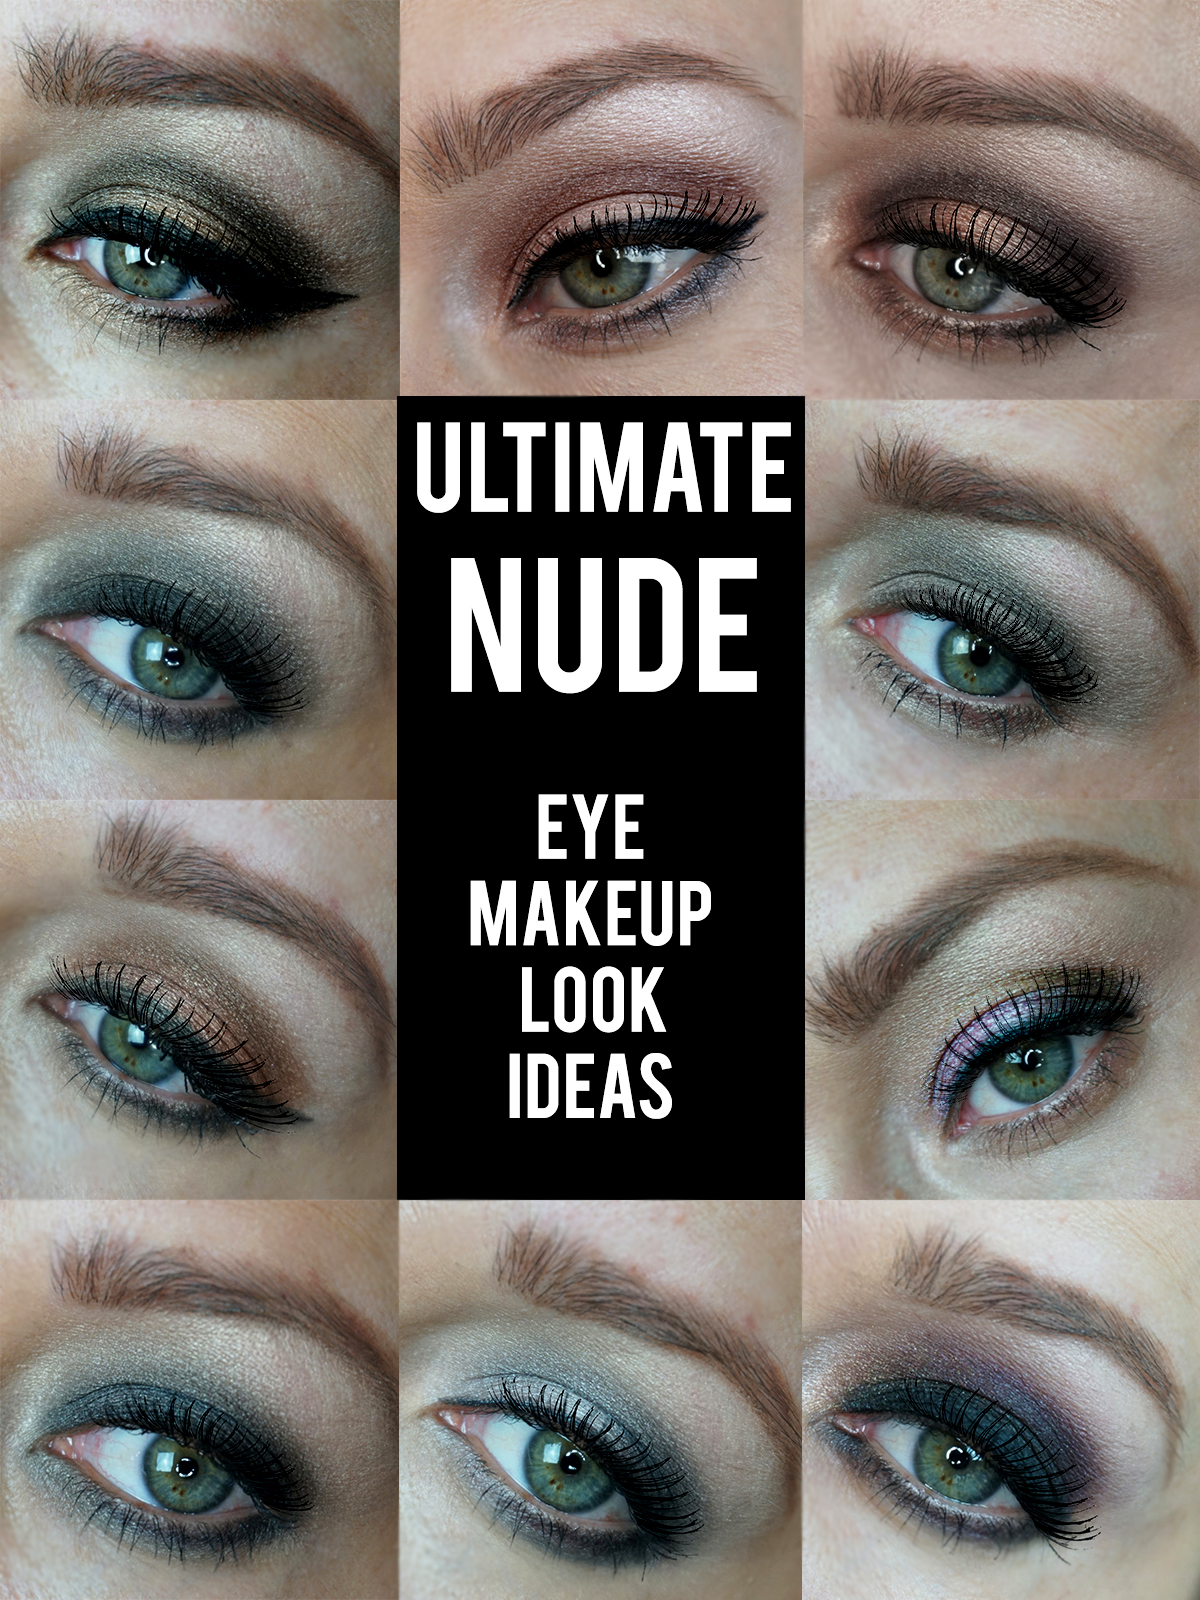 ULTIMATE NUDES EYE MAKEUP LOOK IDEAS